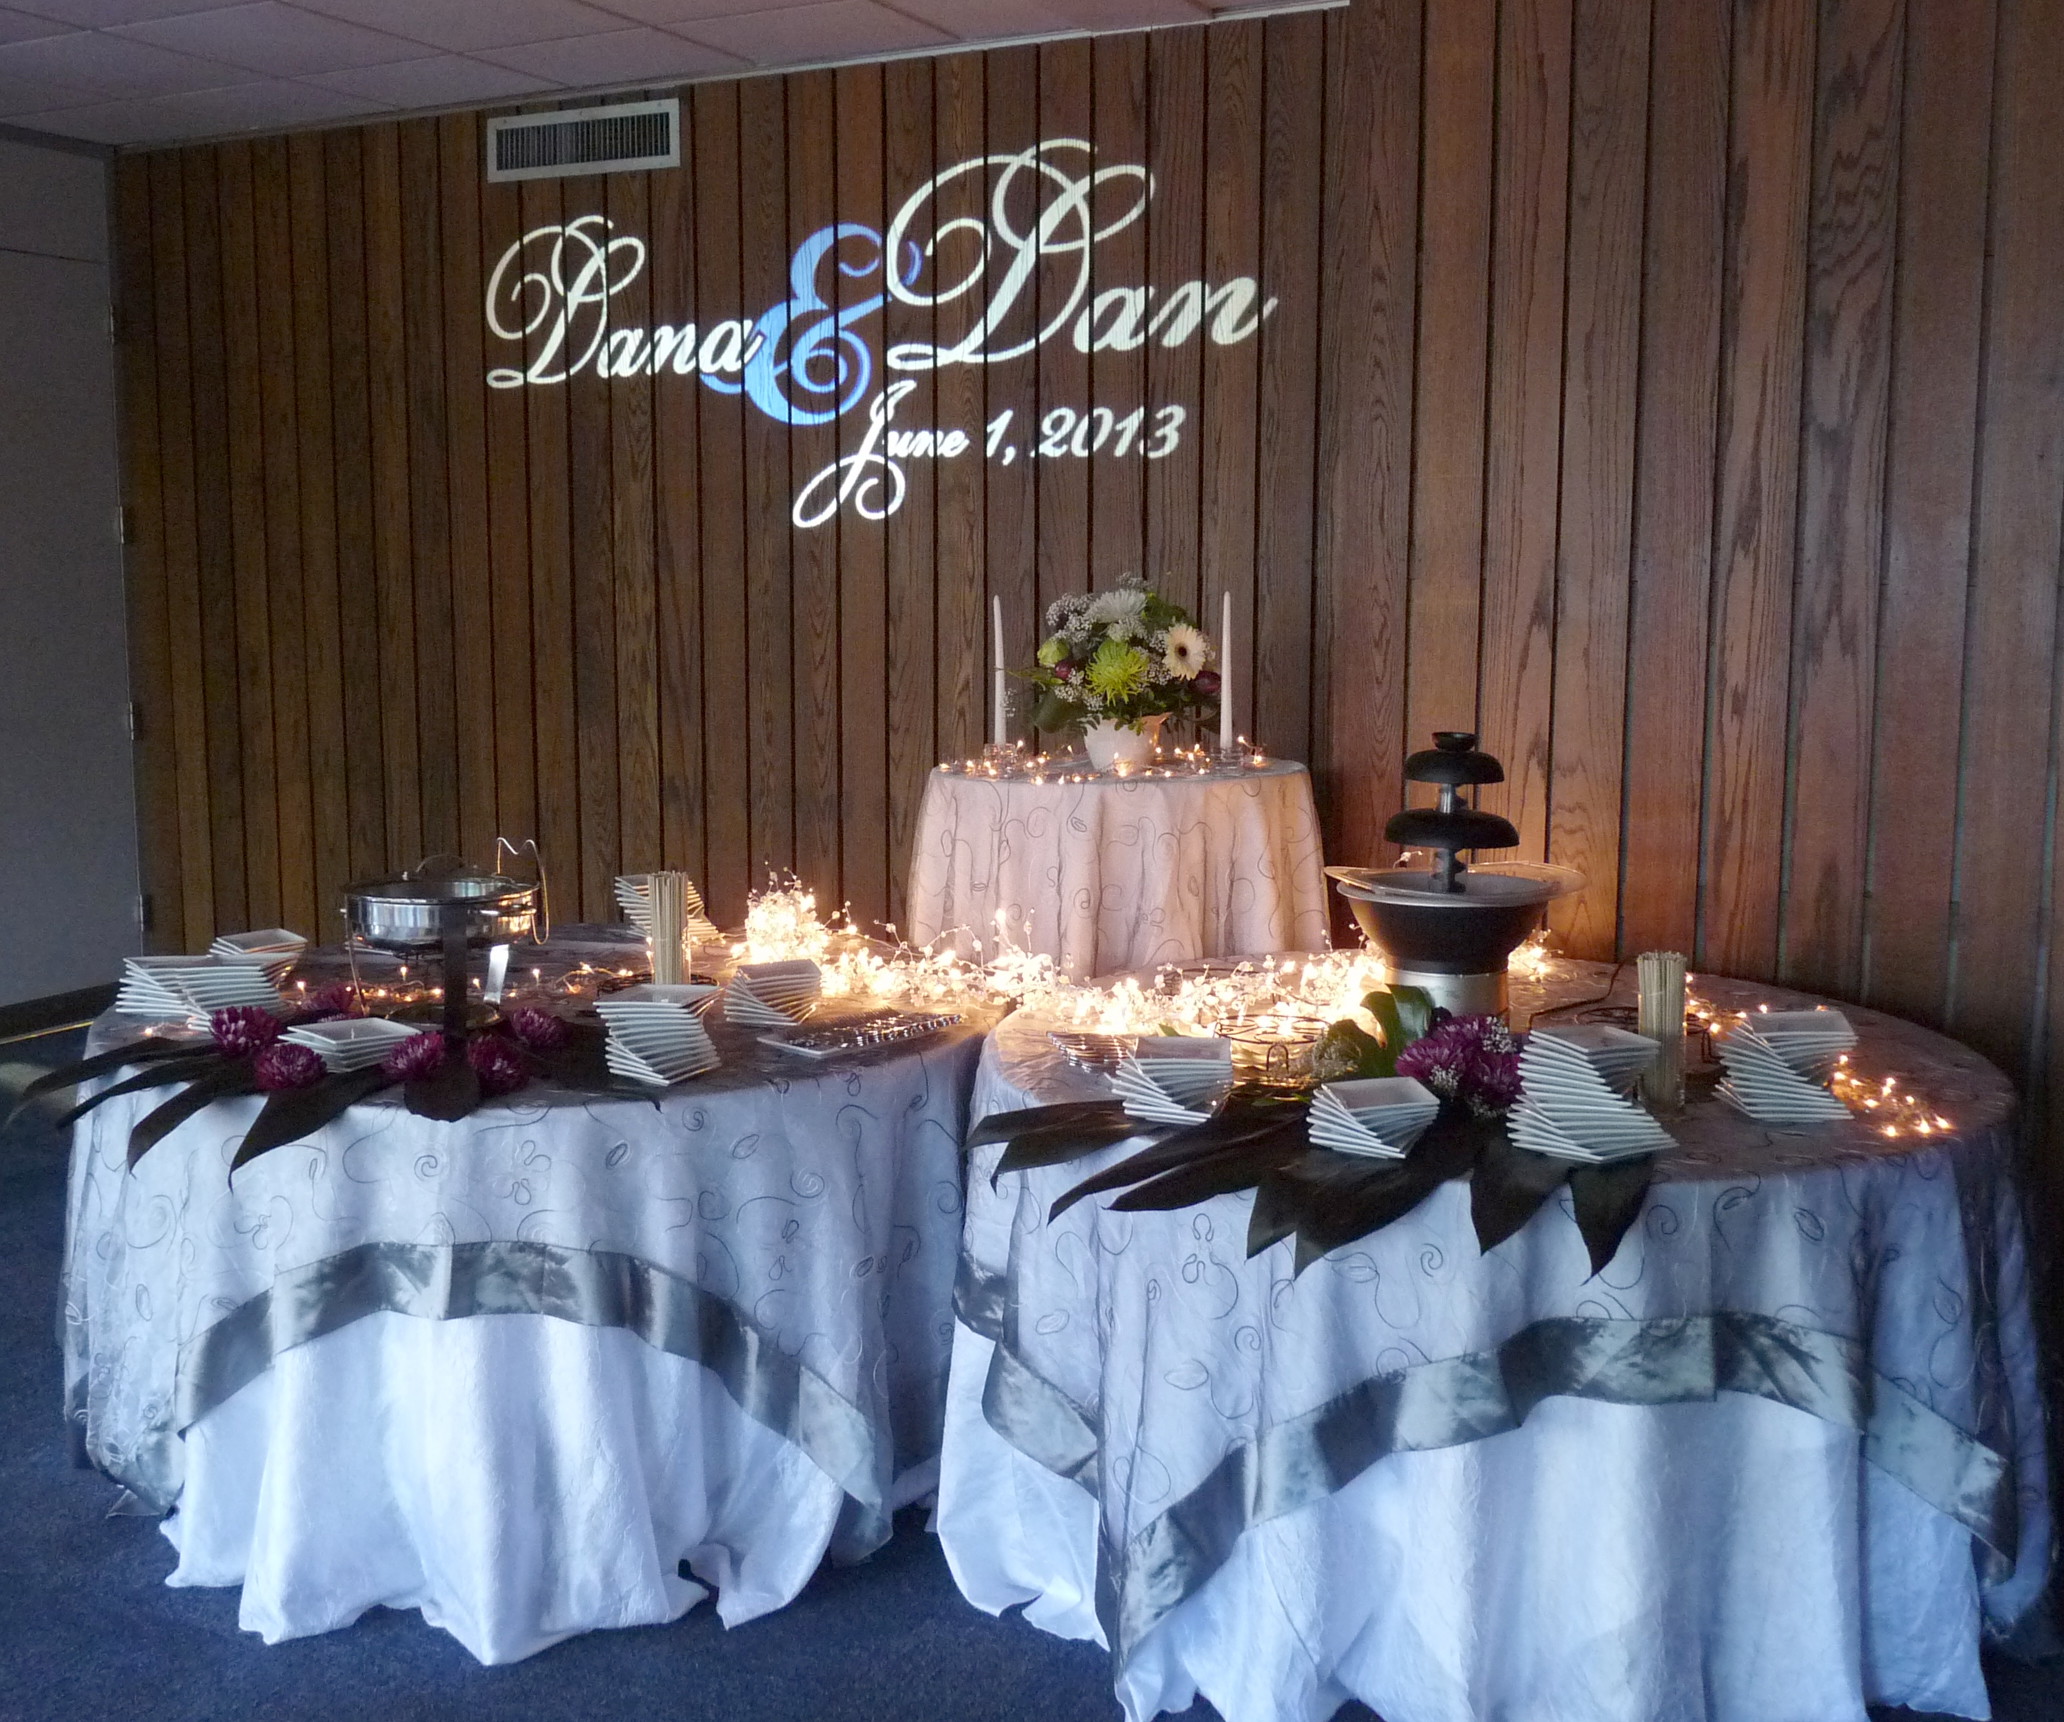 Wedding gobo over the sweets table